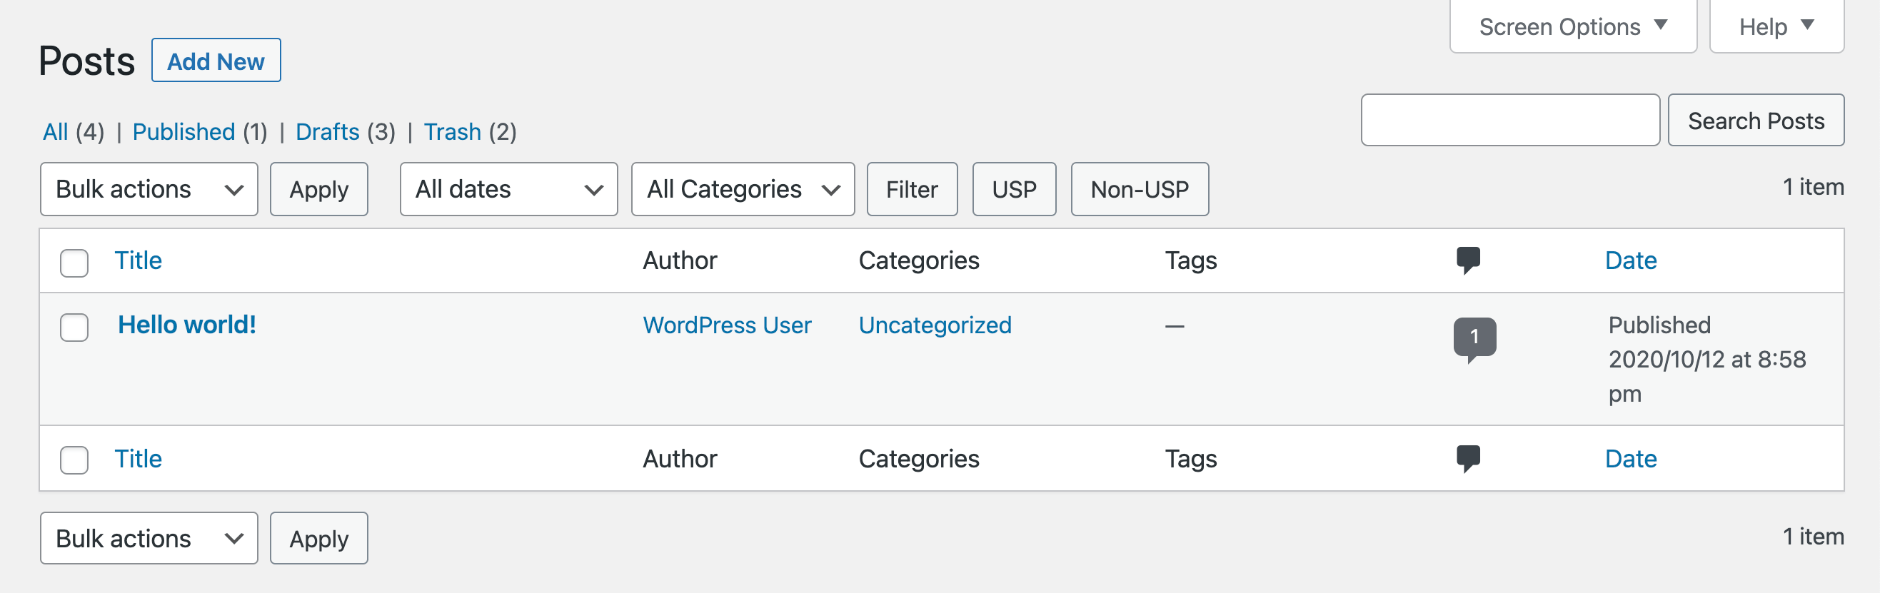 USP Pro - Filter Non-Submitted Posts